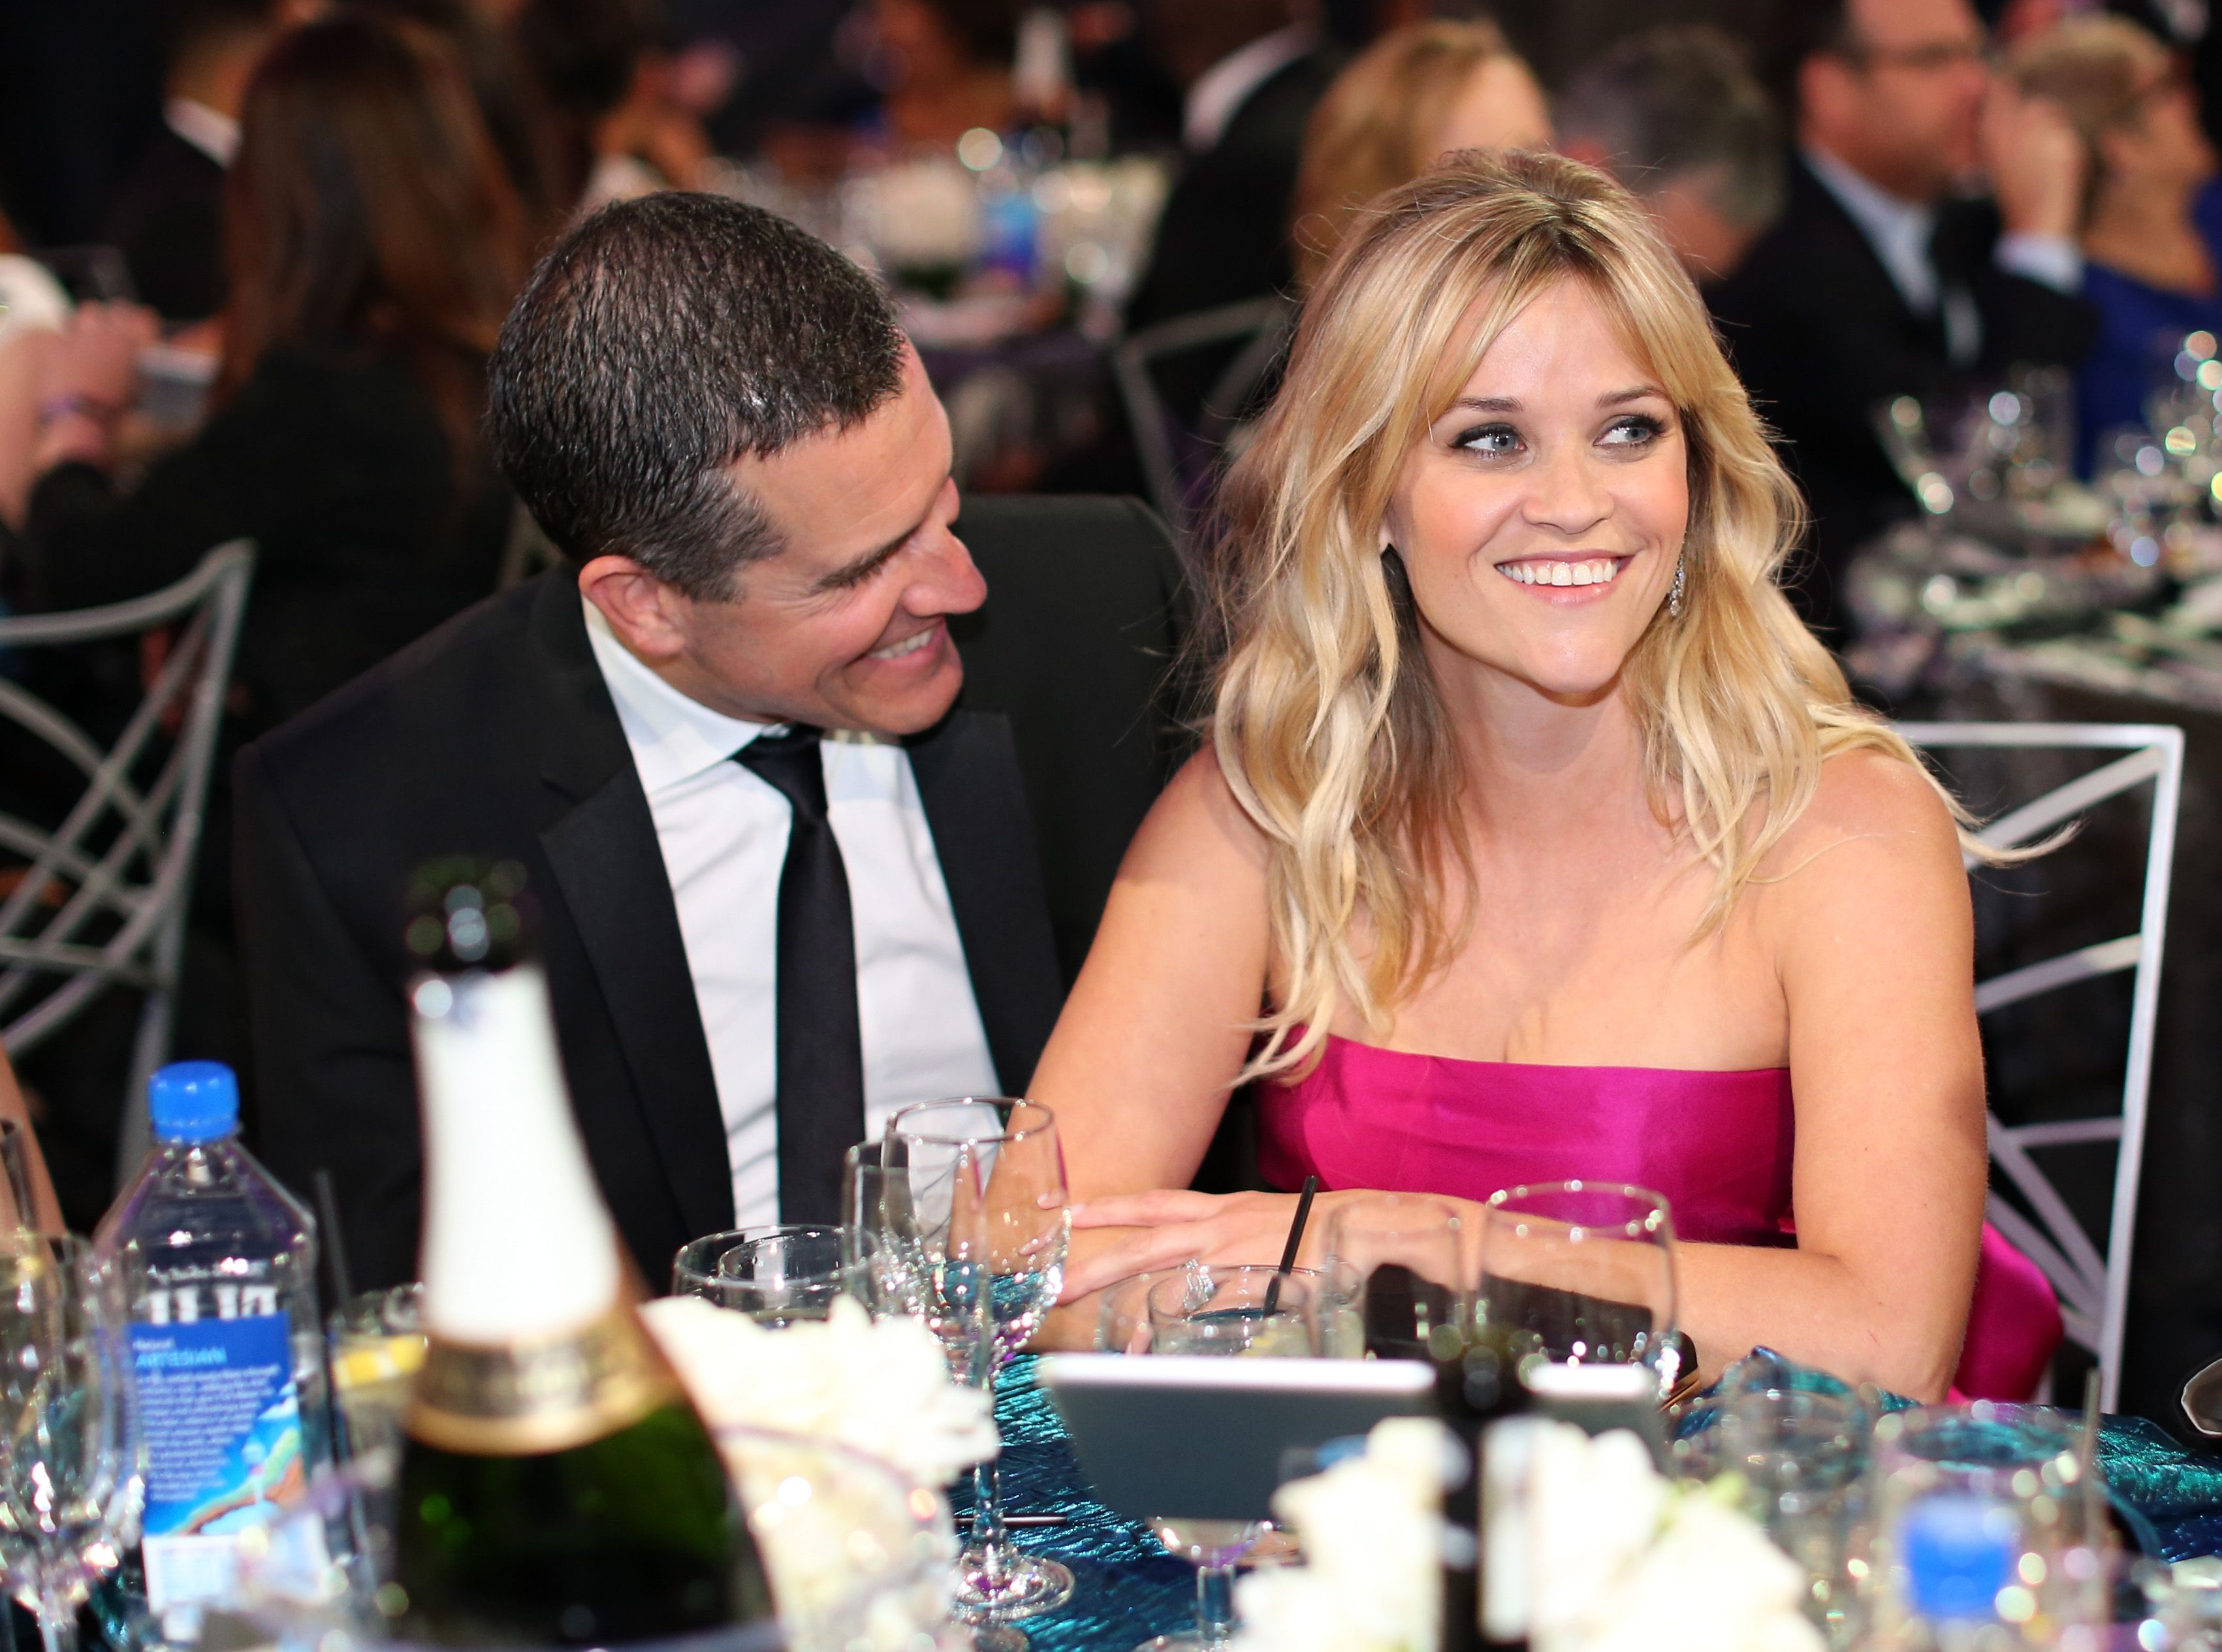 Reese Witherspoon And Husband Jim Toth Can't Get Enough Of Each Other